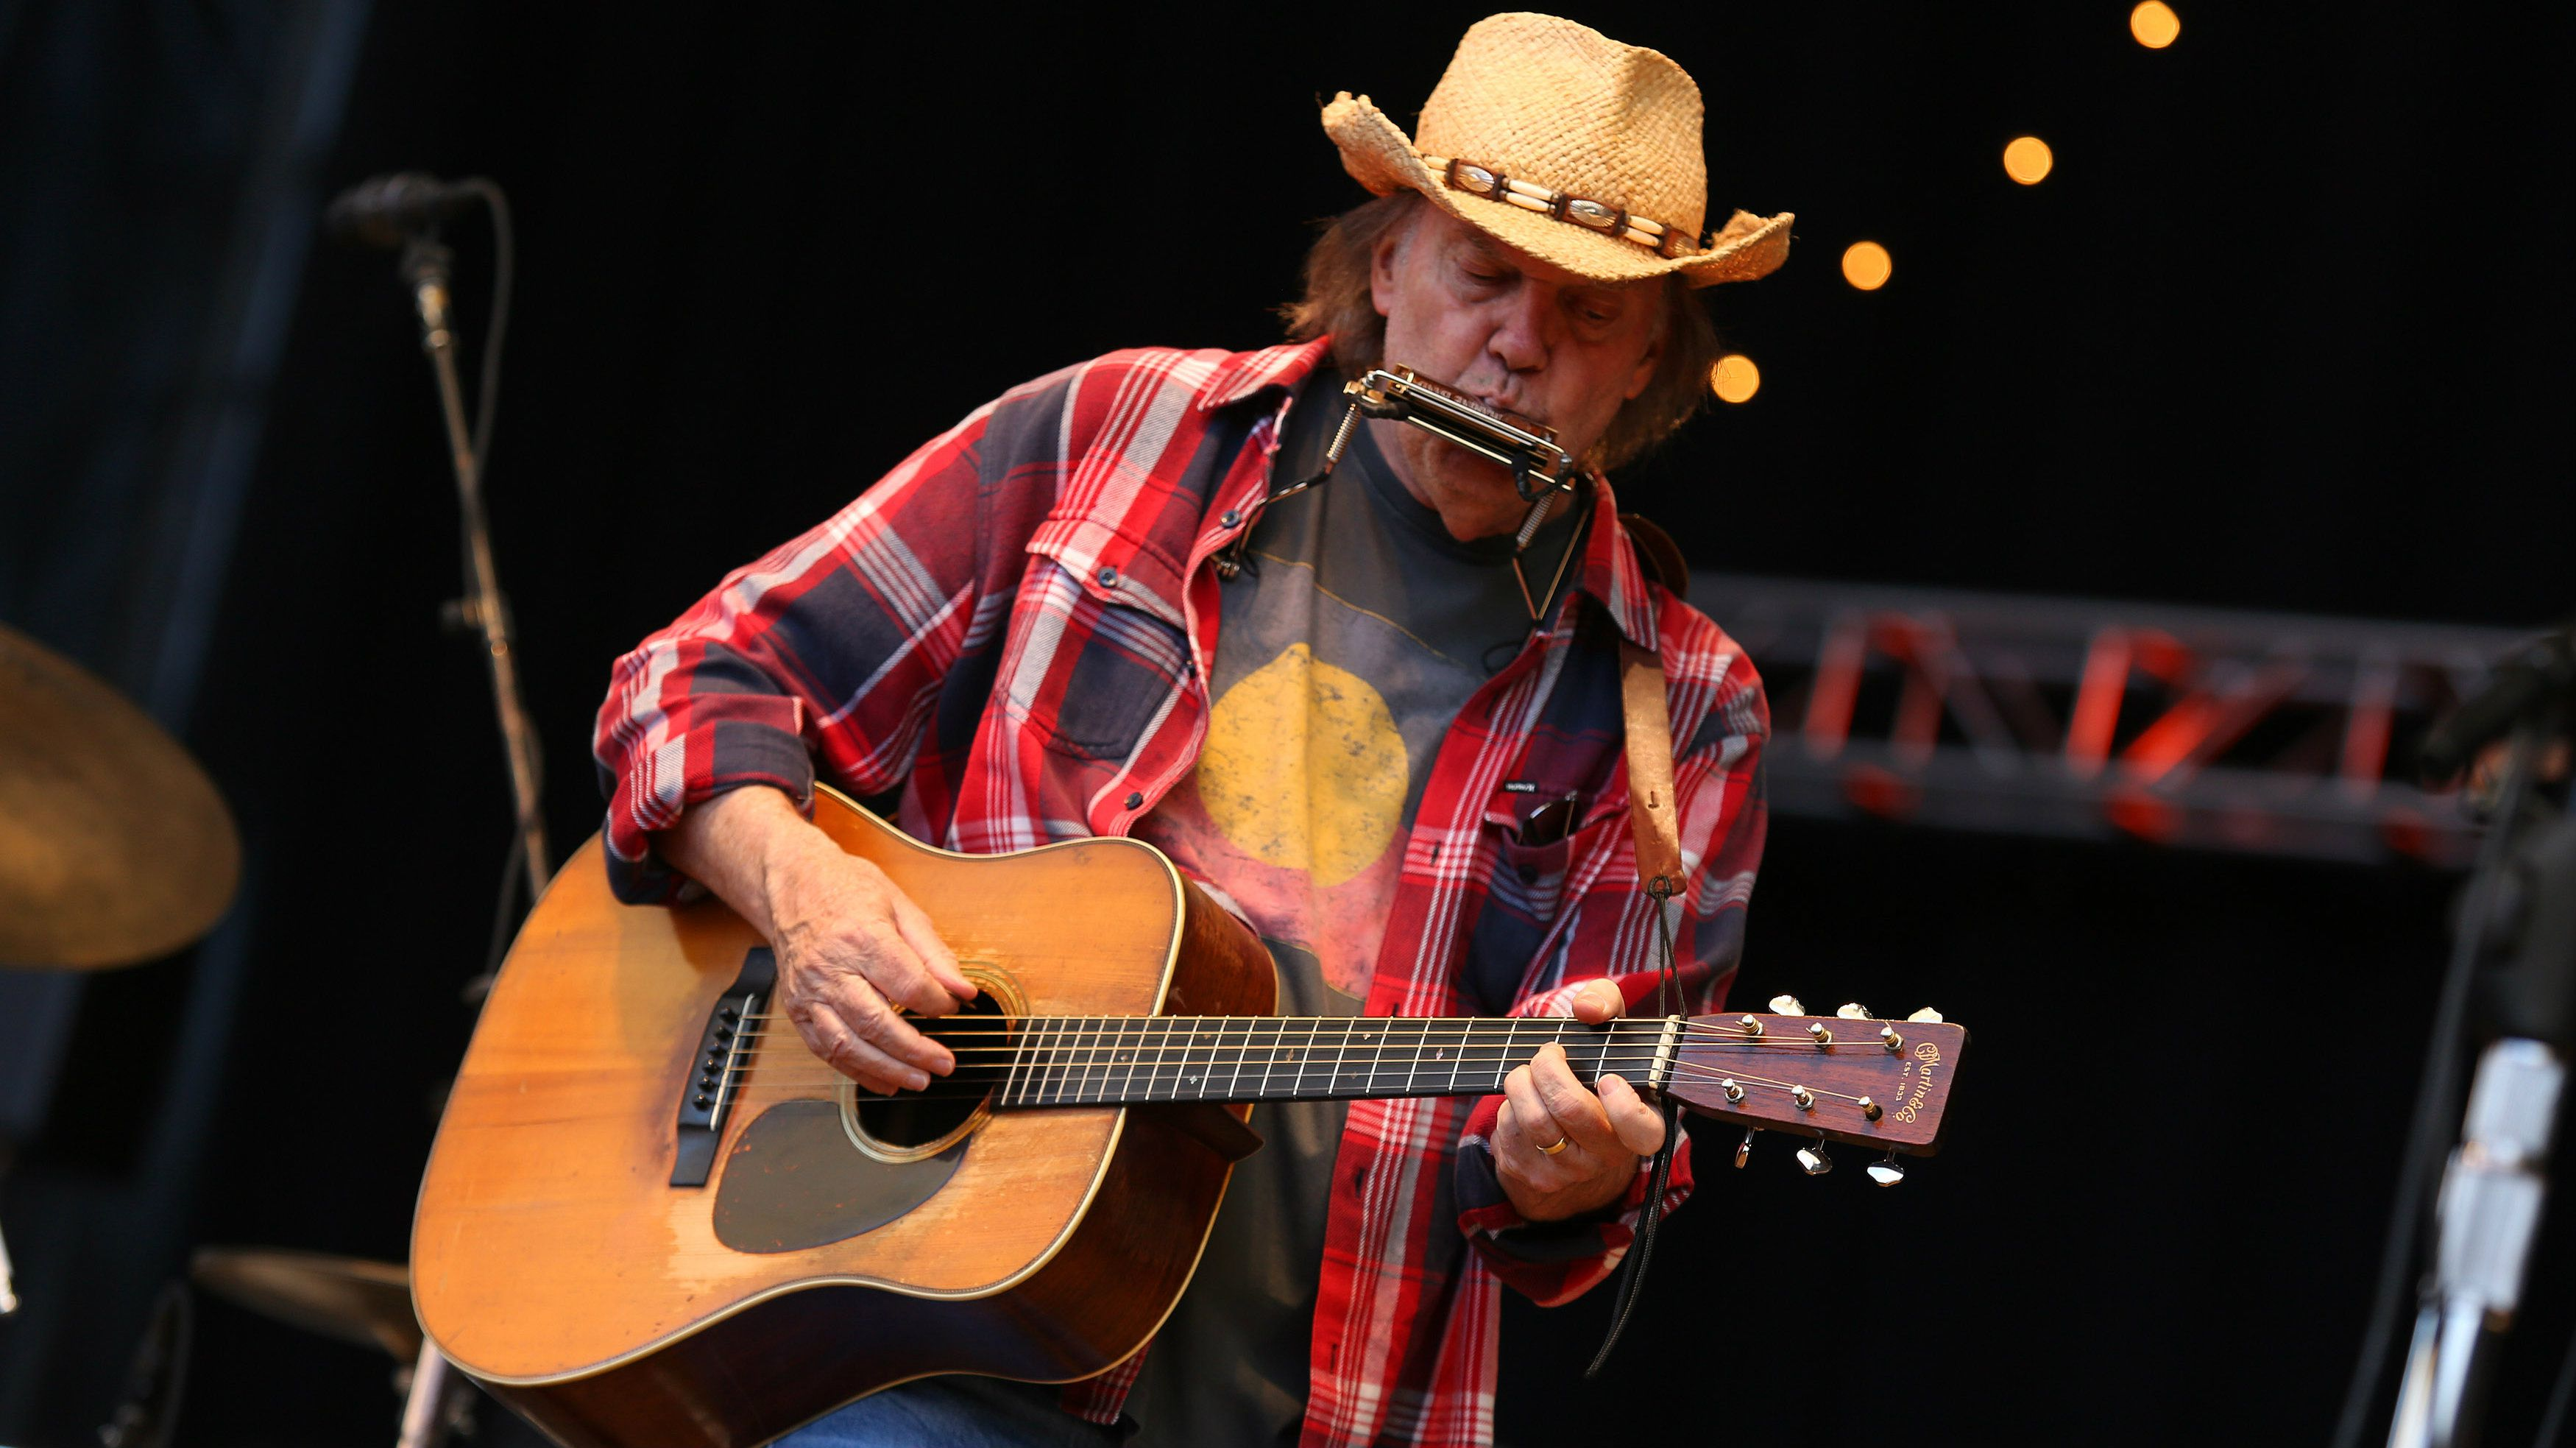 Neil Young playing music live.